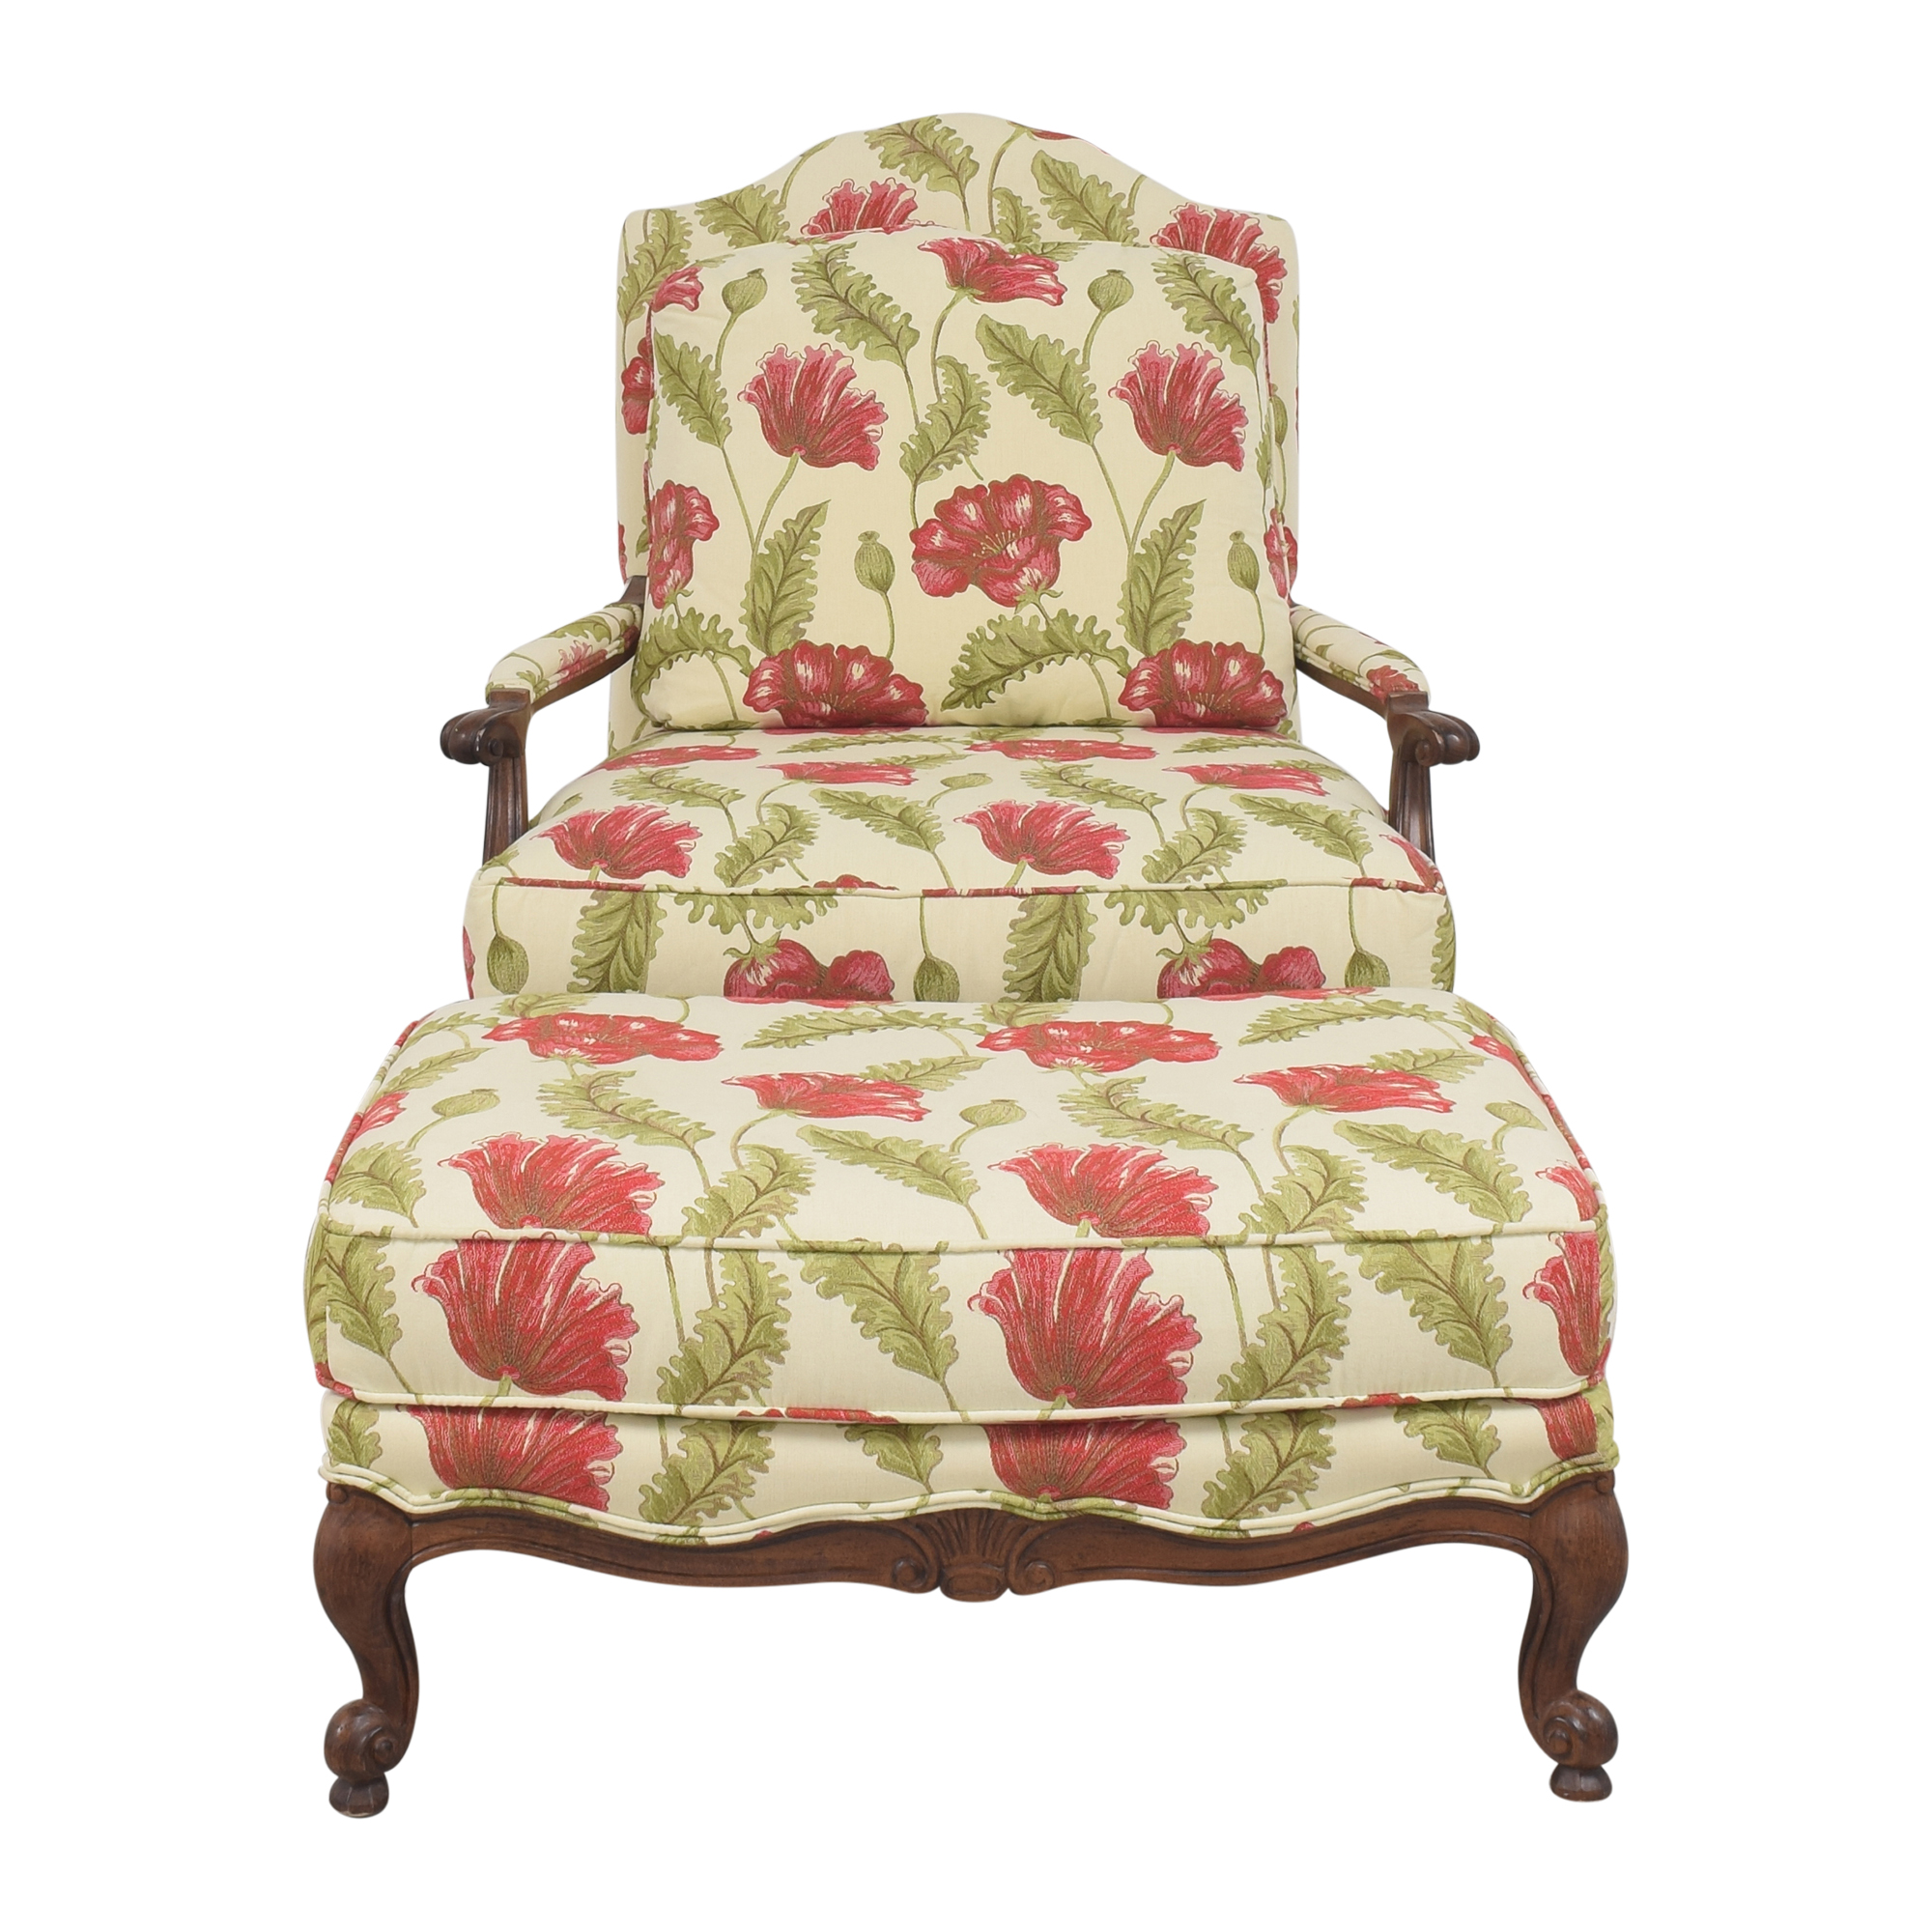 Clayton Marcus Clayton Marcus Floral Chair with Ottoman nyc